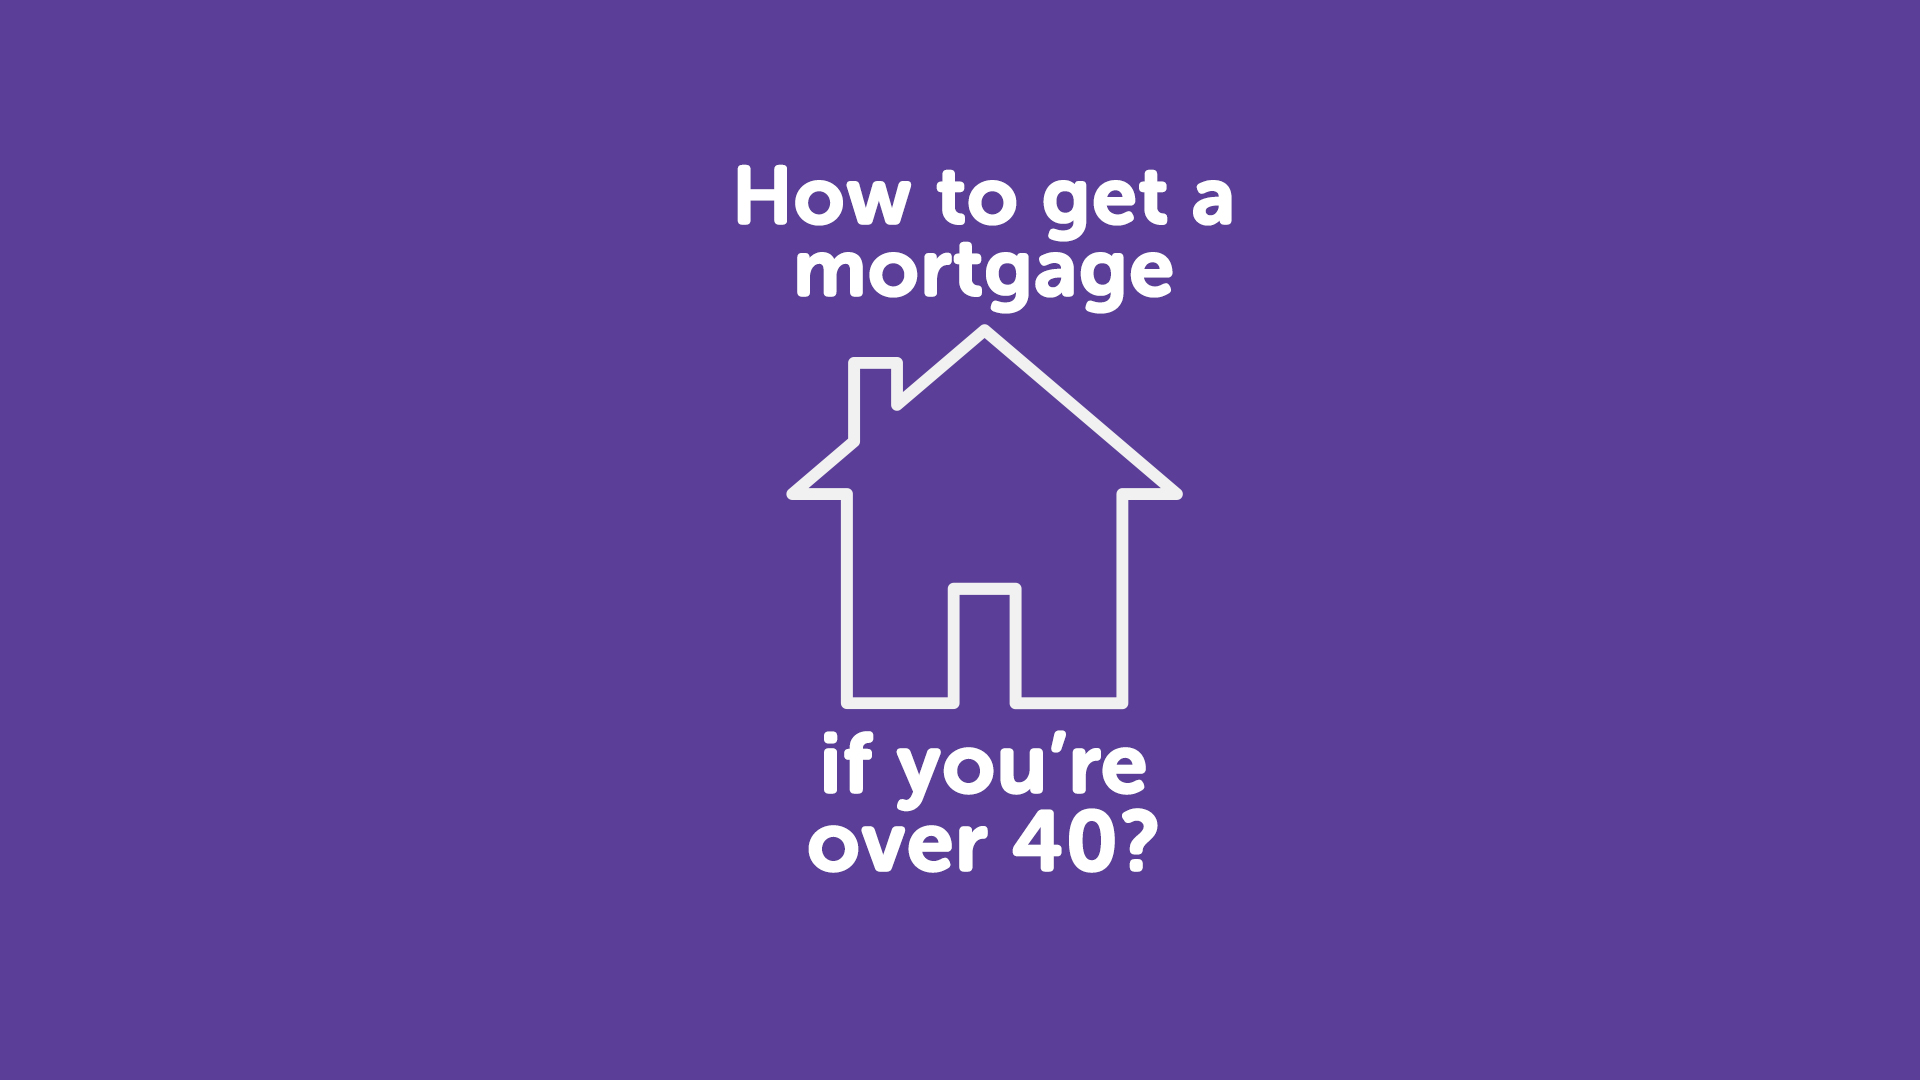 How to get a mortgage if you're over 40